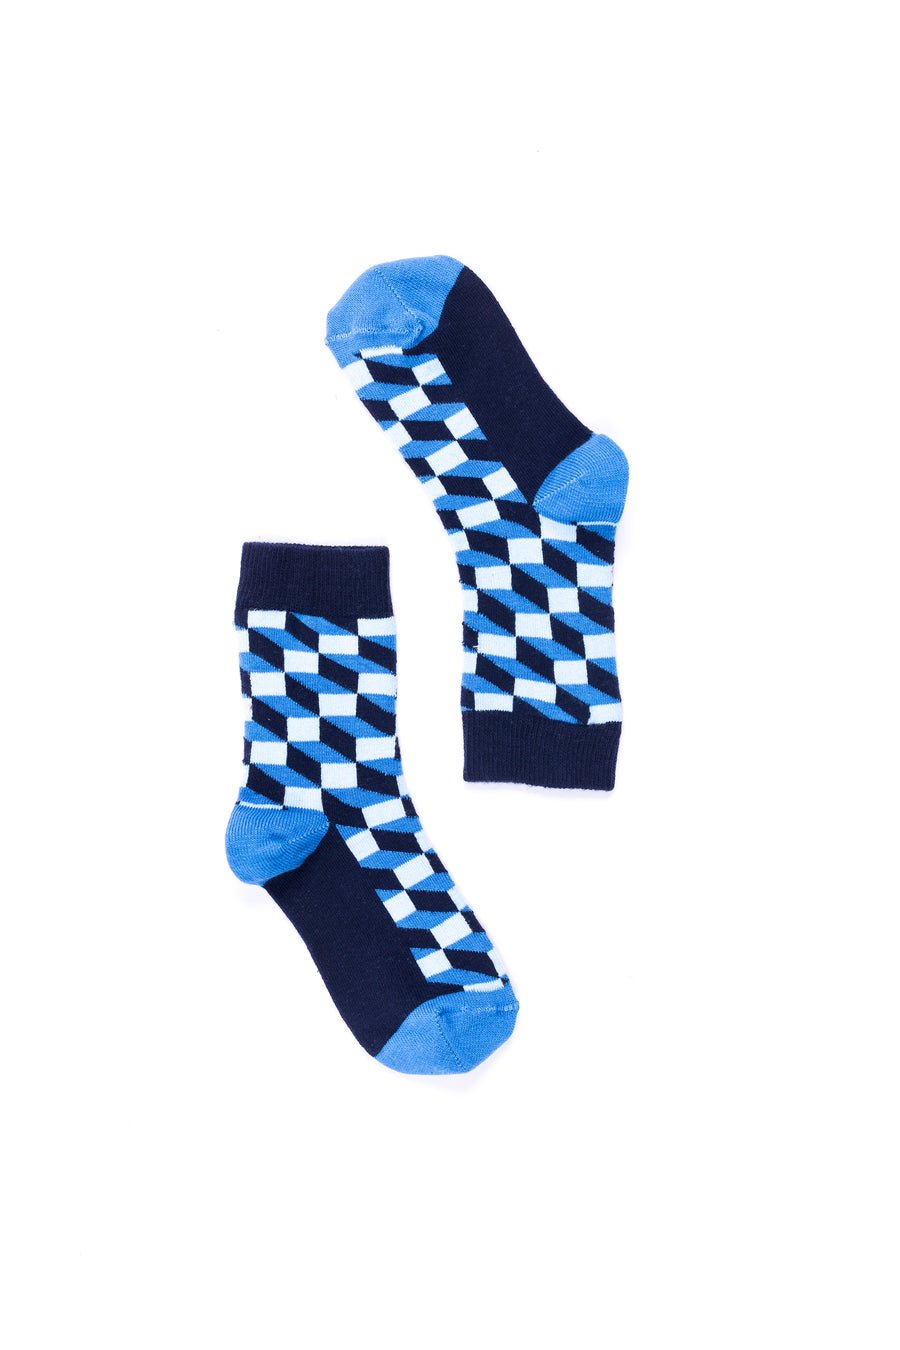 Women's Navy Block Socks